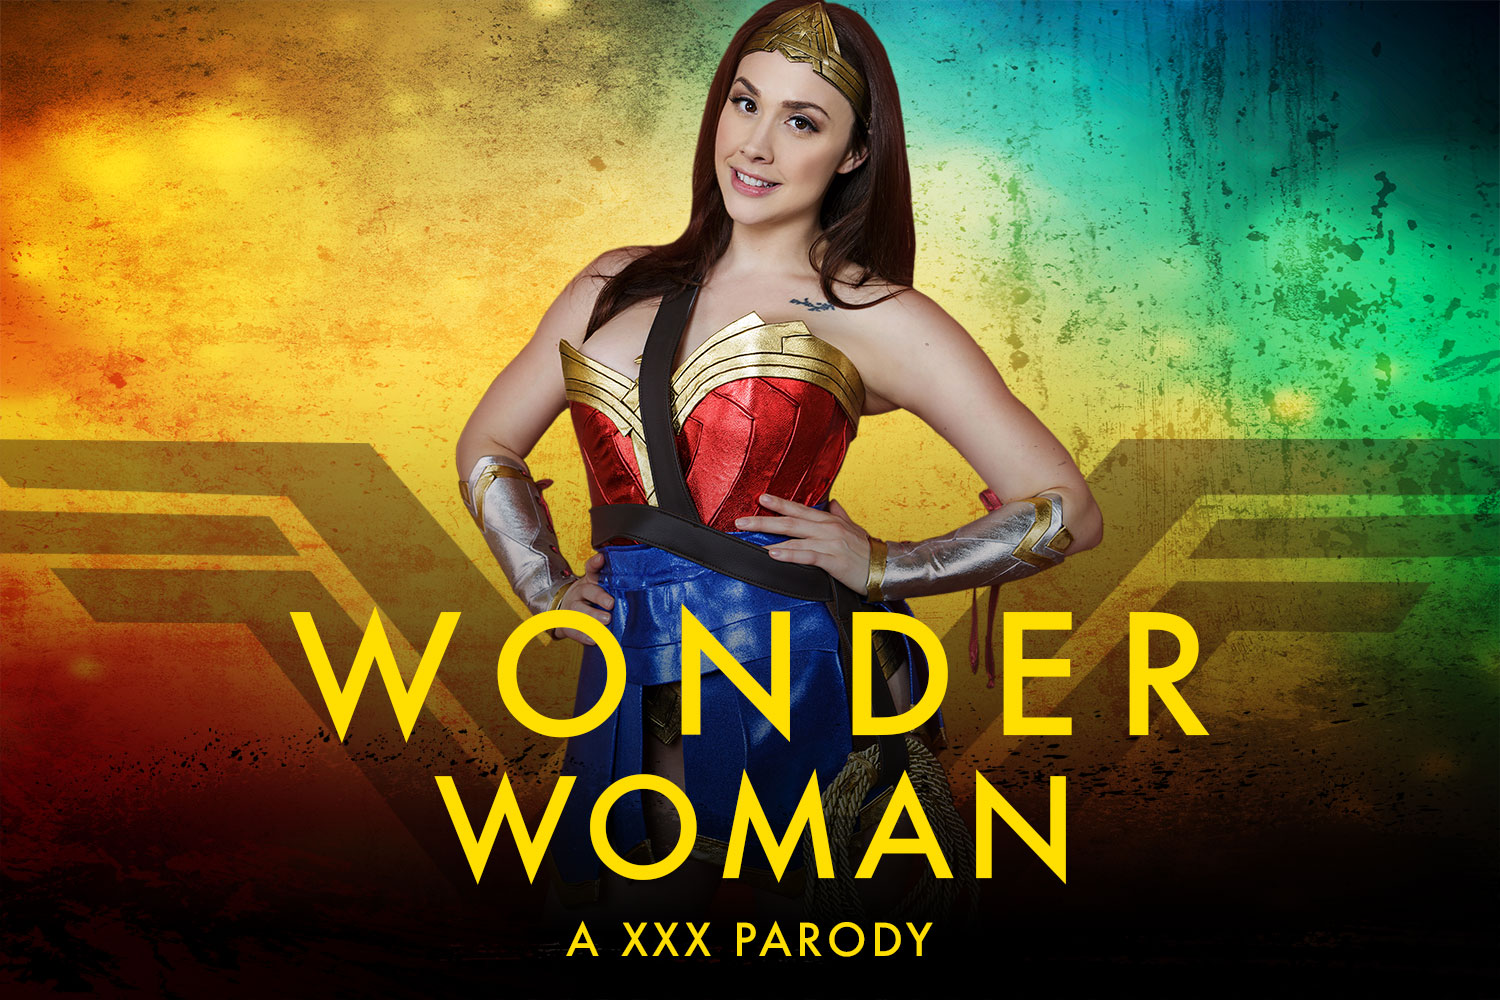 Wonder Woman Vr Porn Cosplay Starring Chanel Preston  Vr -4239